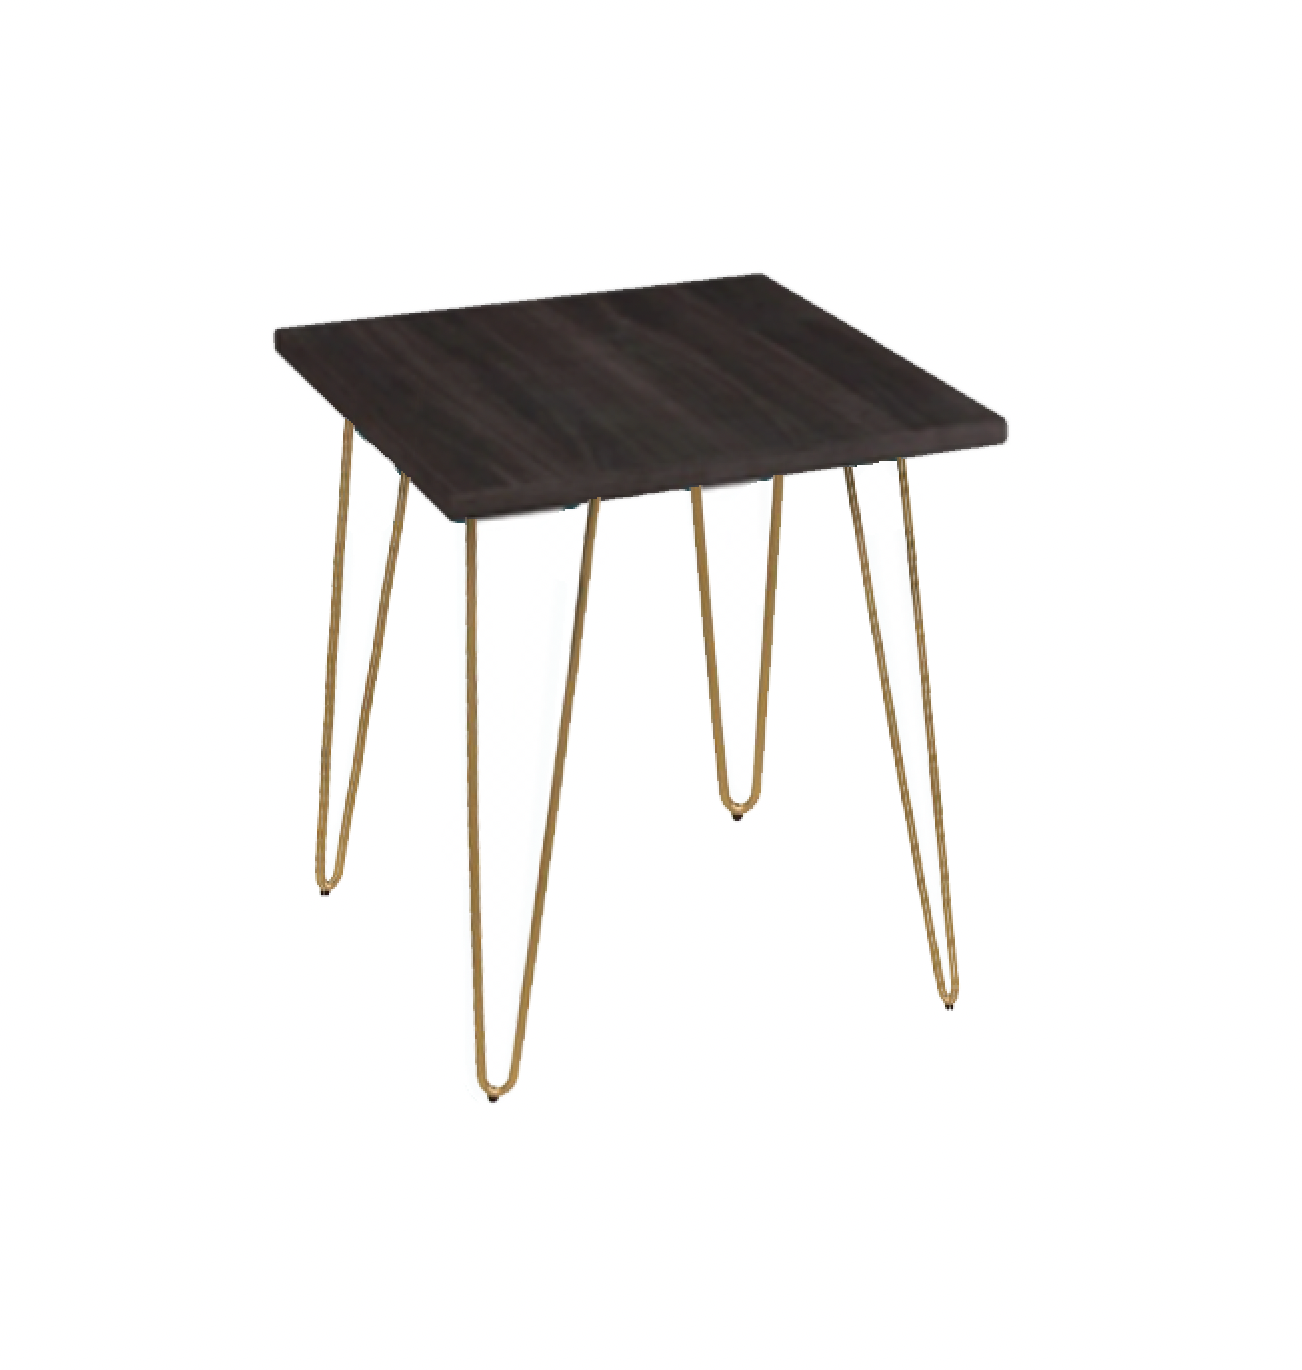 Wood Top/Gold Leg Retro Table Side Table